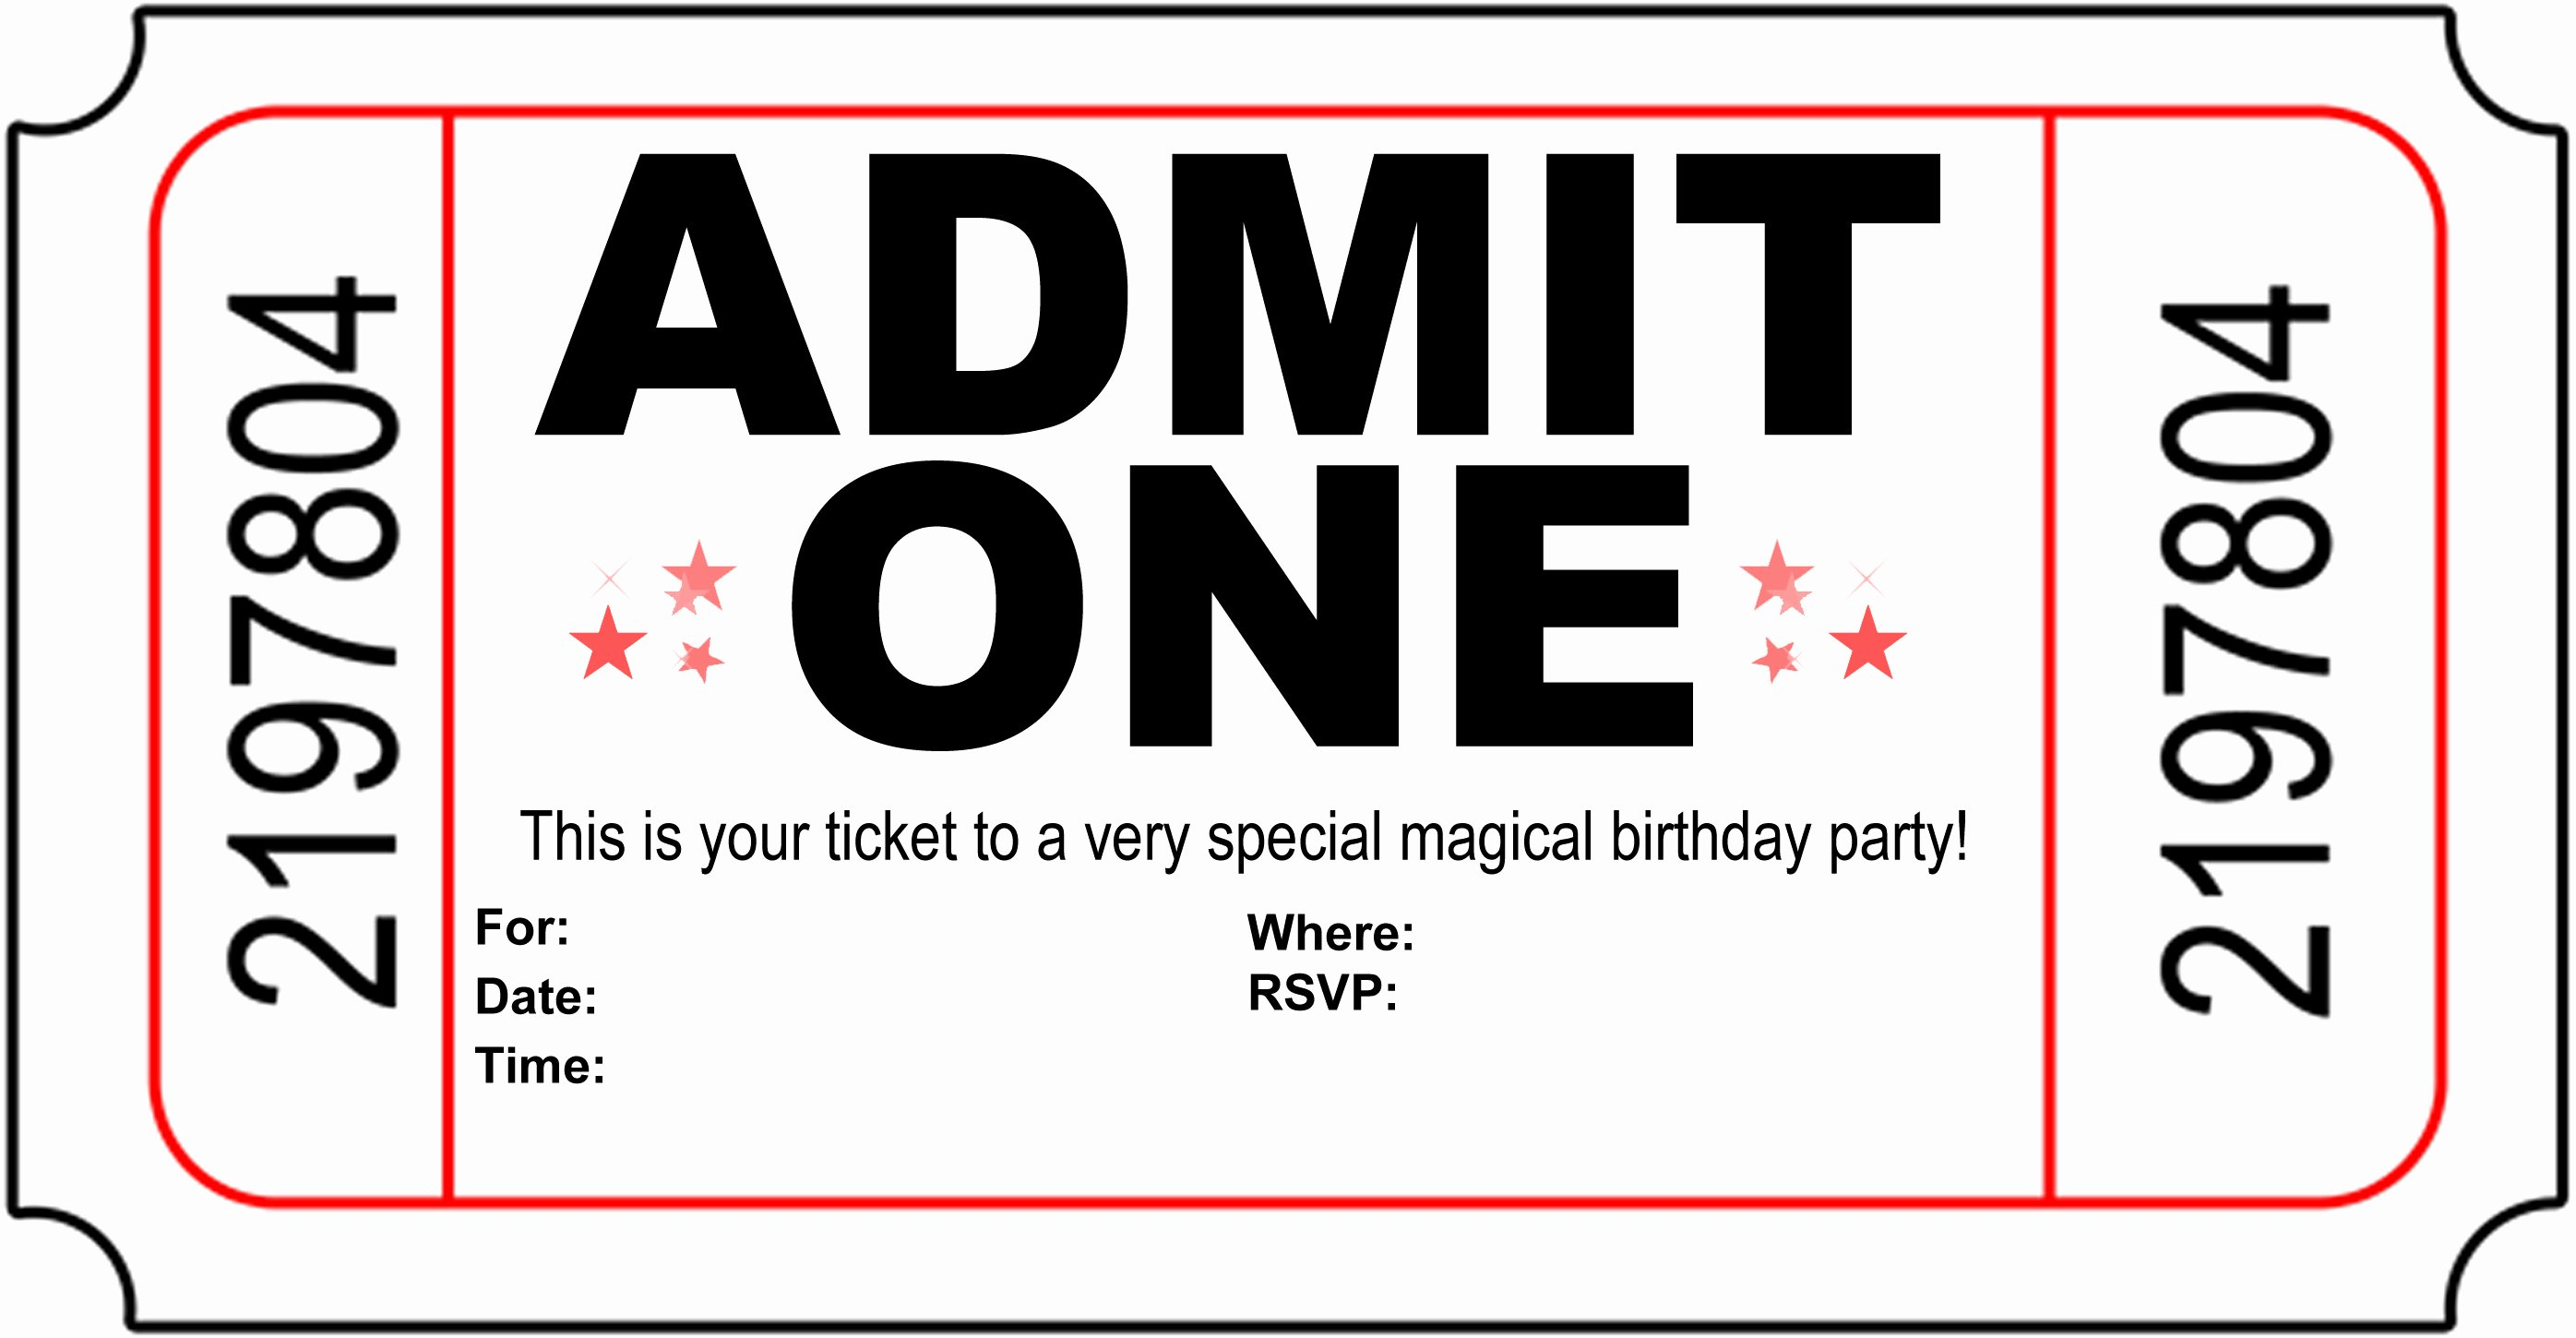 Carnival Ticket Invitation Template Free Best Of Free Carnival Ticket Invitation Template Download Free